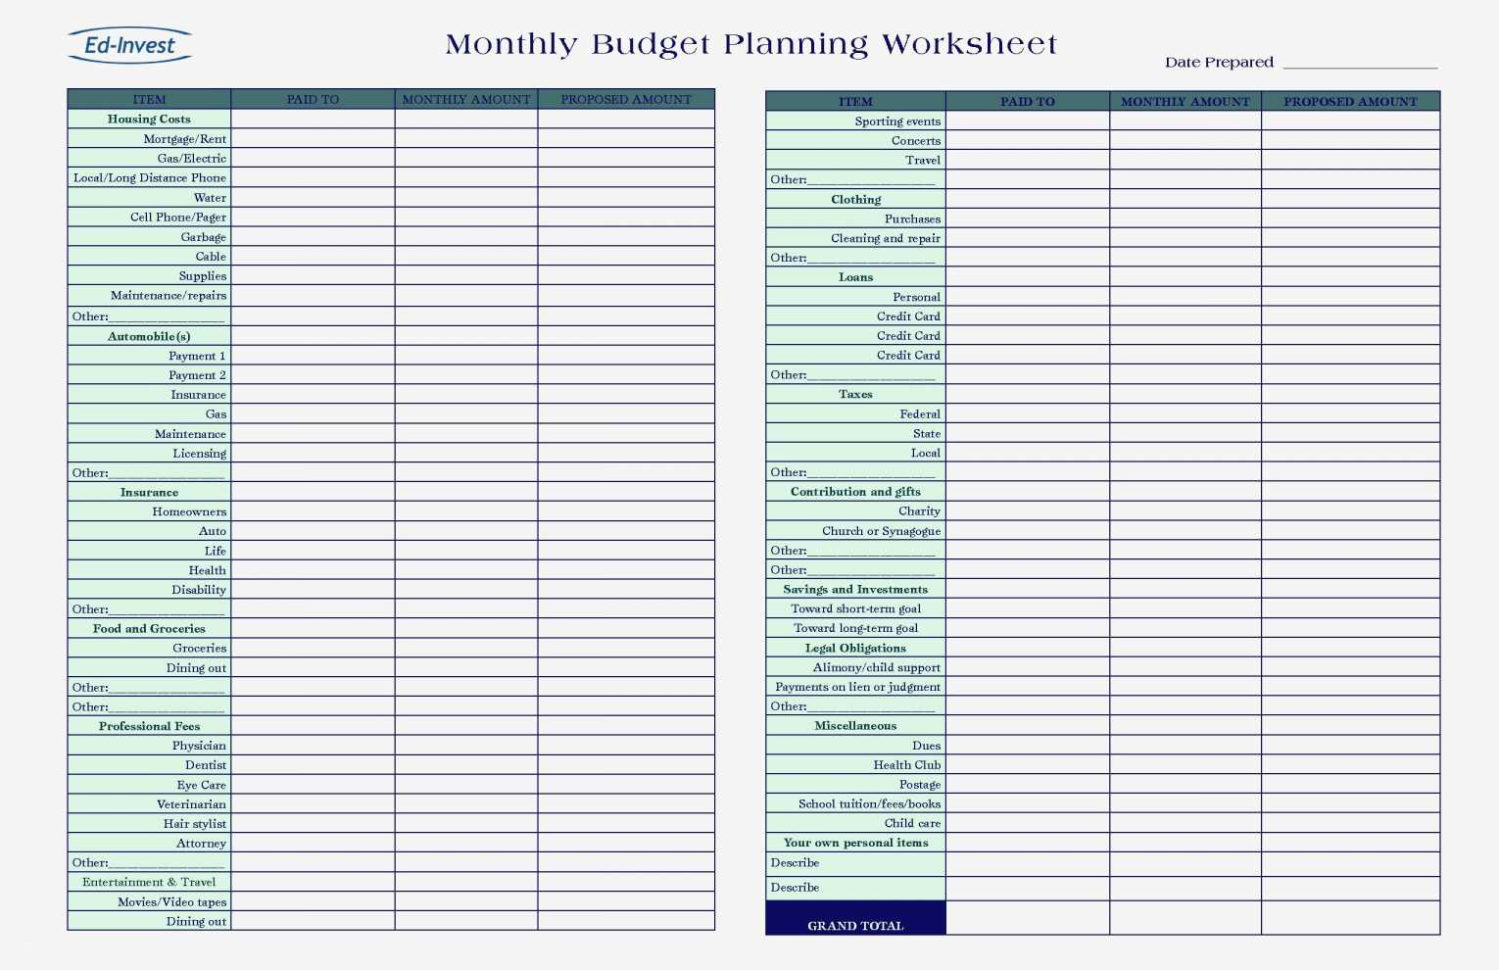 Simple Accounting Spreadsheet For Small Business | Worksheet For Free Simple Accounting Spreadsheet Small Business